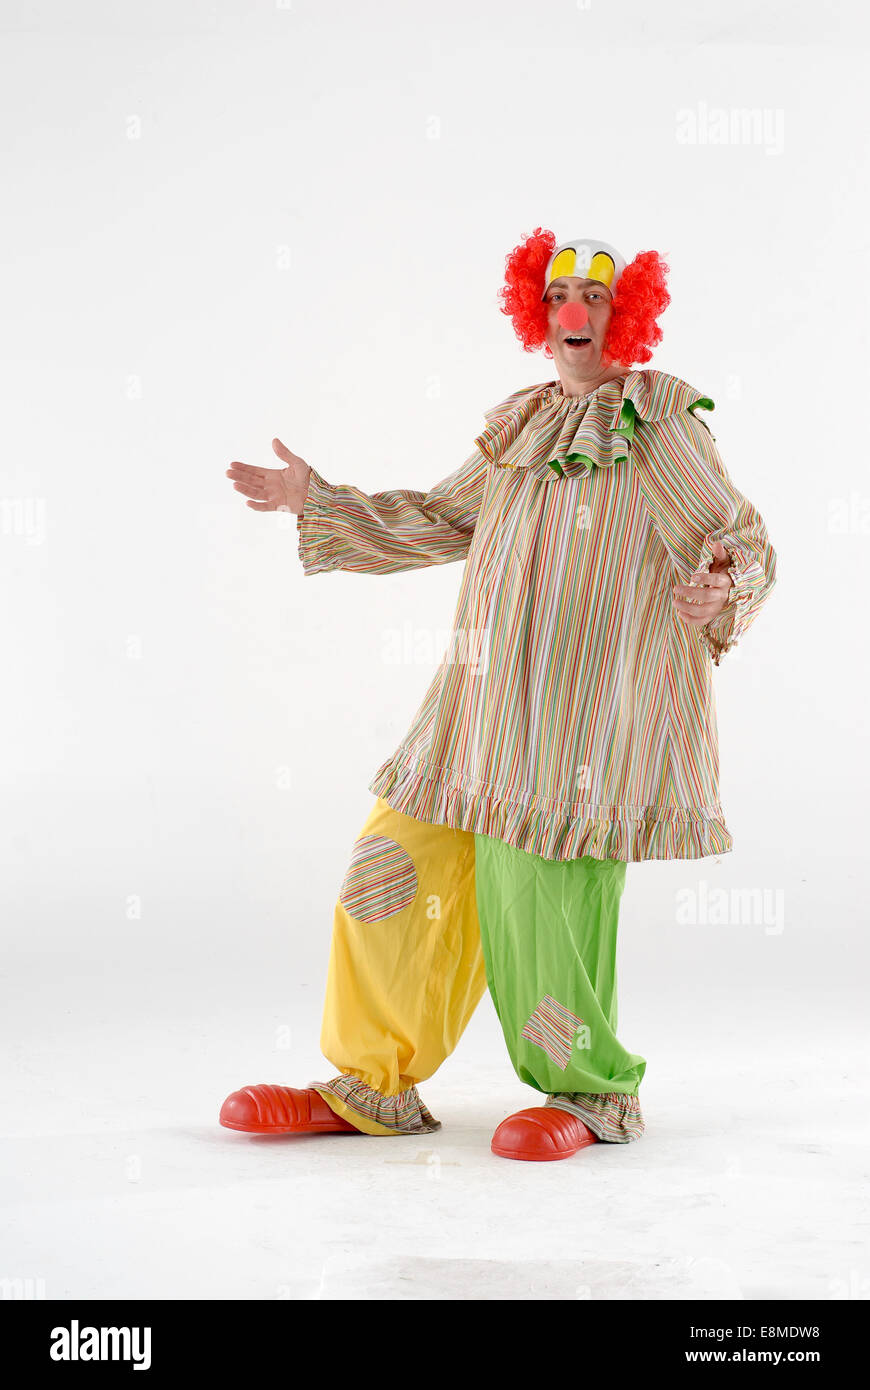 man dressed in fancy dress comedy costume in a circus clown outfit with funny wig baggy clothes giant shoes u0026 red nose  sc 1 st  Alamy & man dressed in fancy dress comedy costume in a circus clown outfit ...